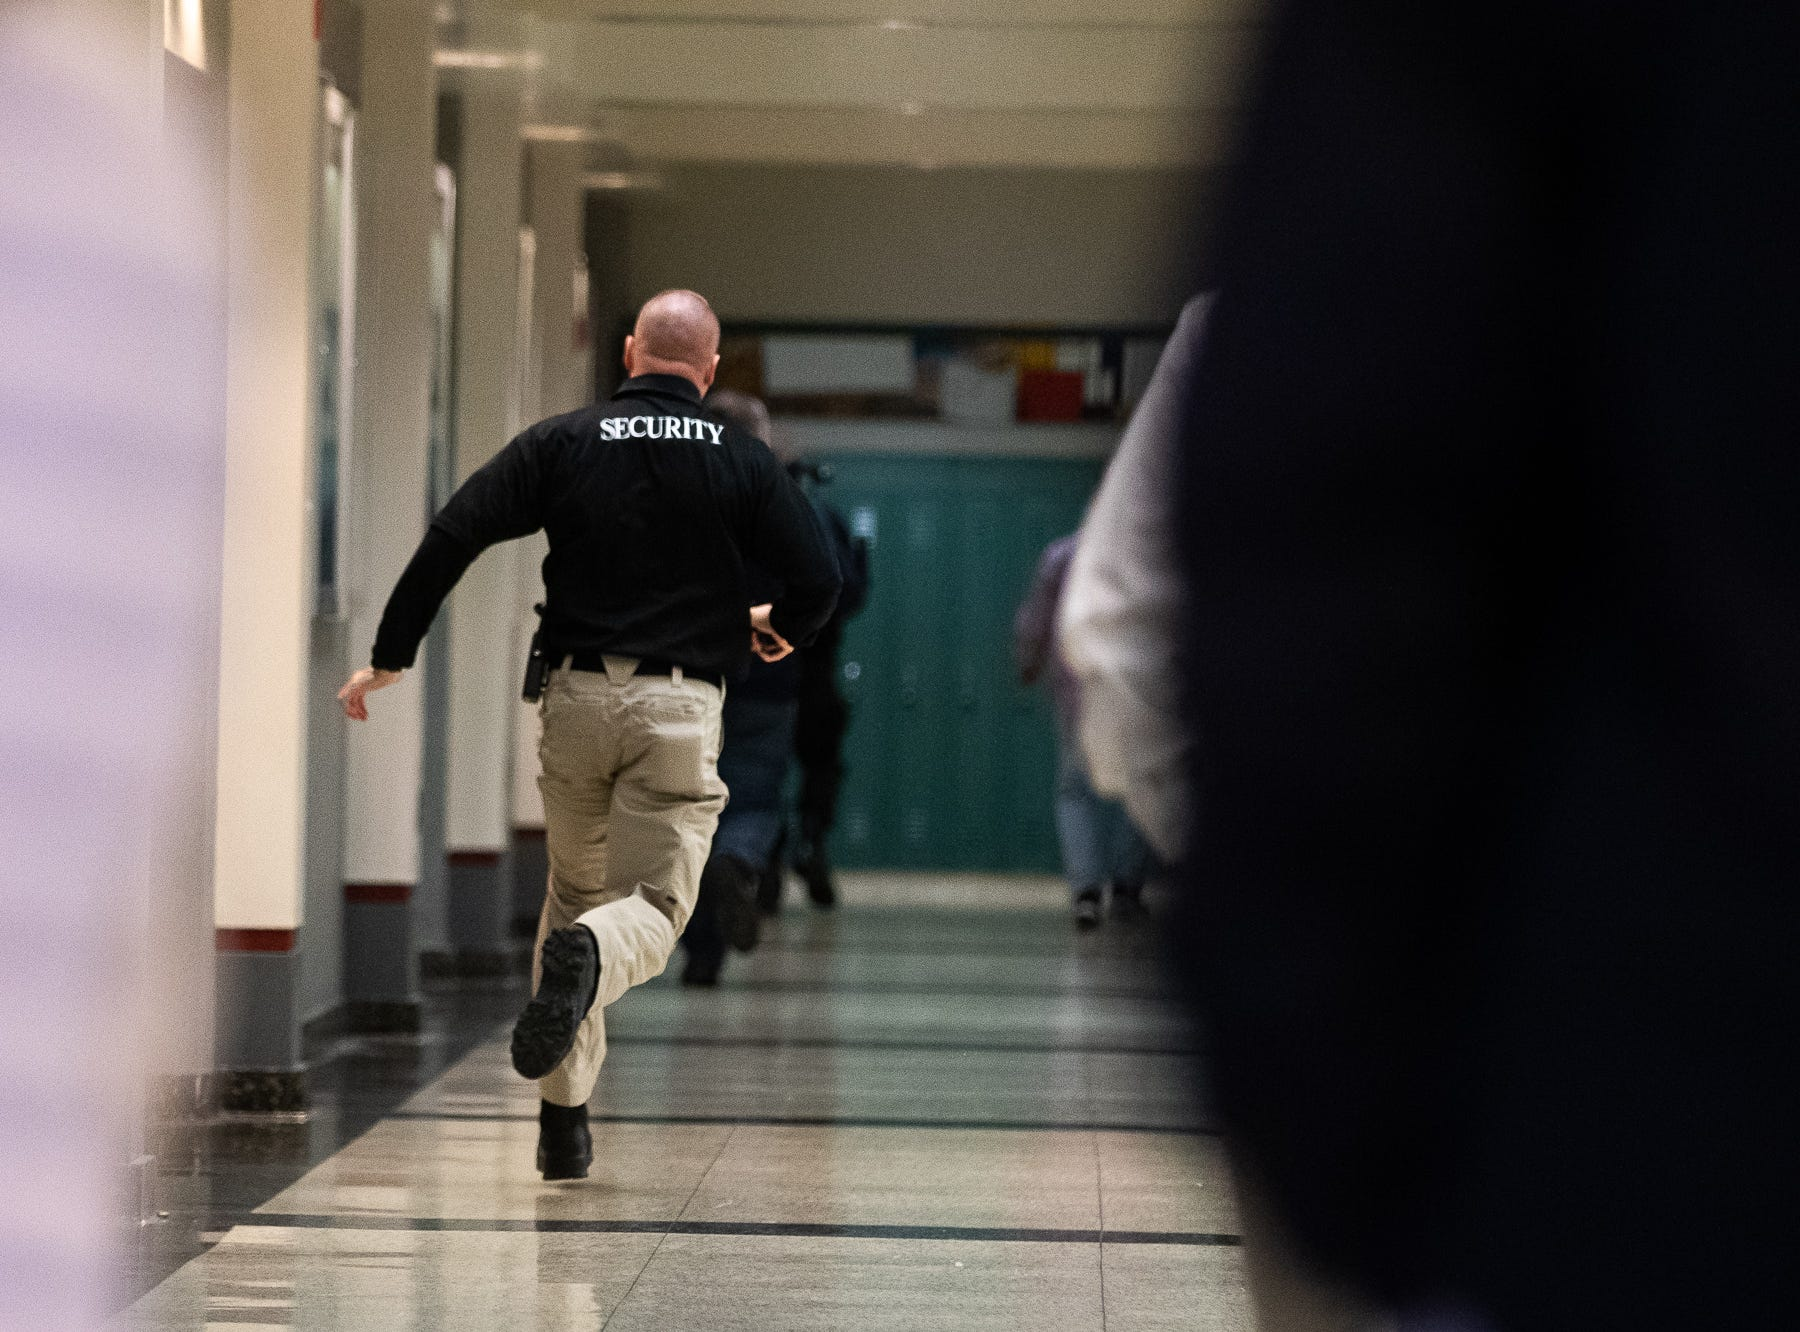 A school security guard takes part in an active shooter drill at South Western High School, Monday, Jan. 21, 2019, in Penn Township. The drill simulated multiple scenarios involving an active shooter, allowing school security and local law enforcement agencies a hands-on opportunity to drill on engaging an active shooter while also giving school staff experience with how real world scenarios could unfold.